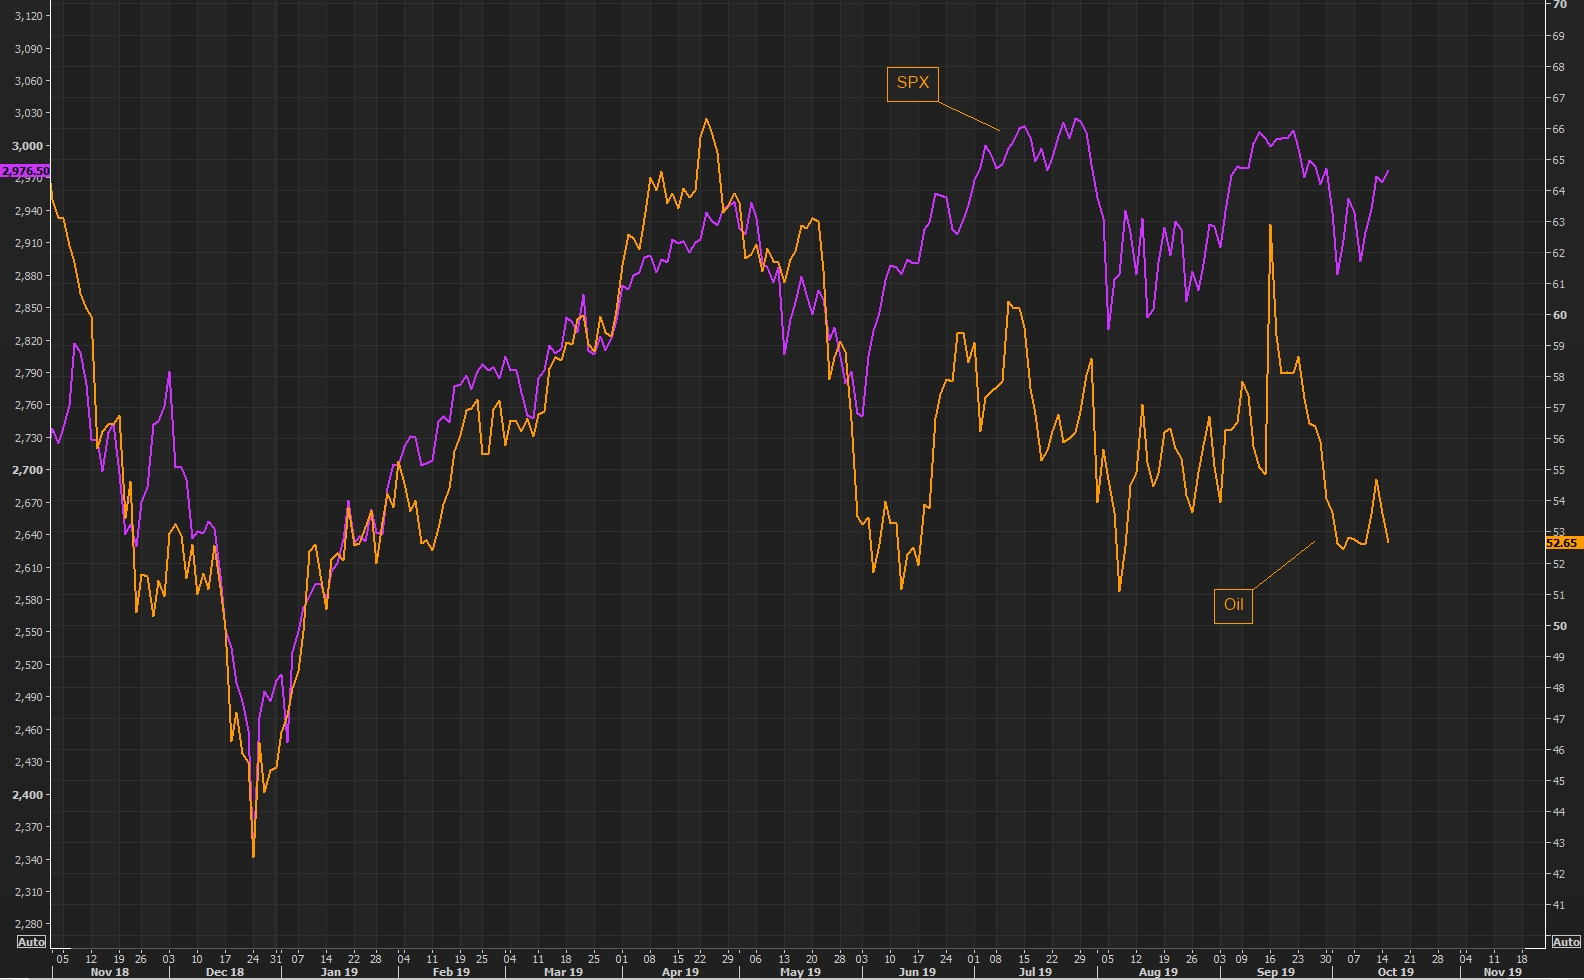 Oil refuses and the gap versus S&P widens